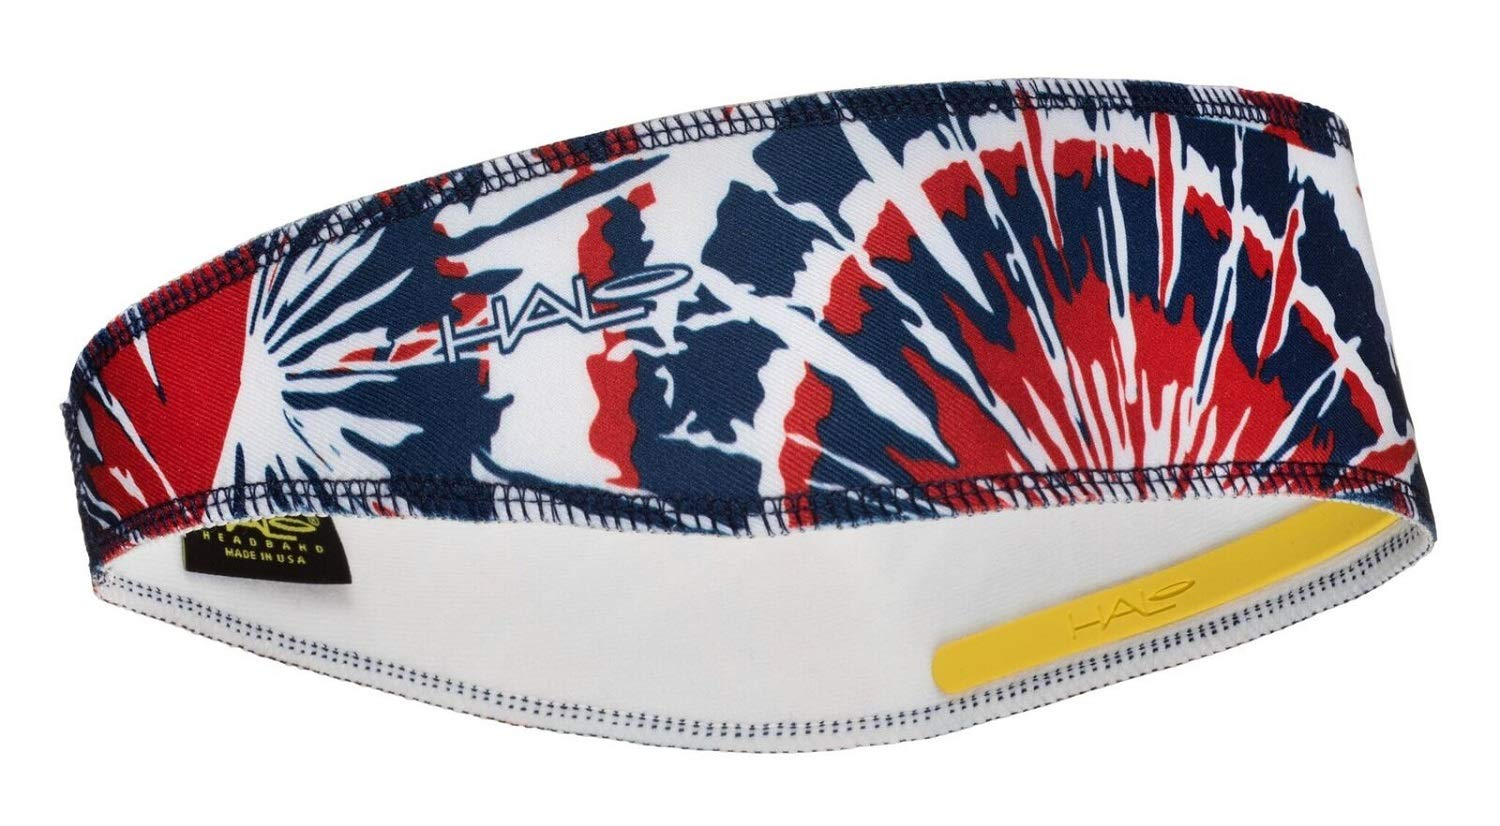 Halo Headbands Halo II Sweatband Pullover, Red White & Blue Tie Dye by Halo Headbands